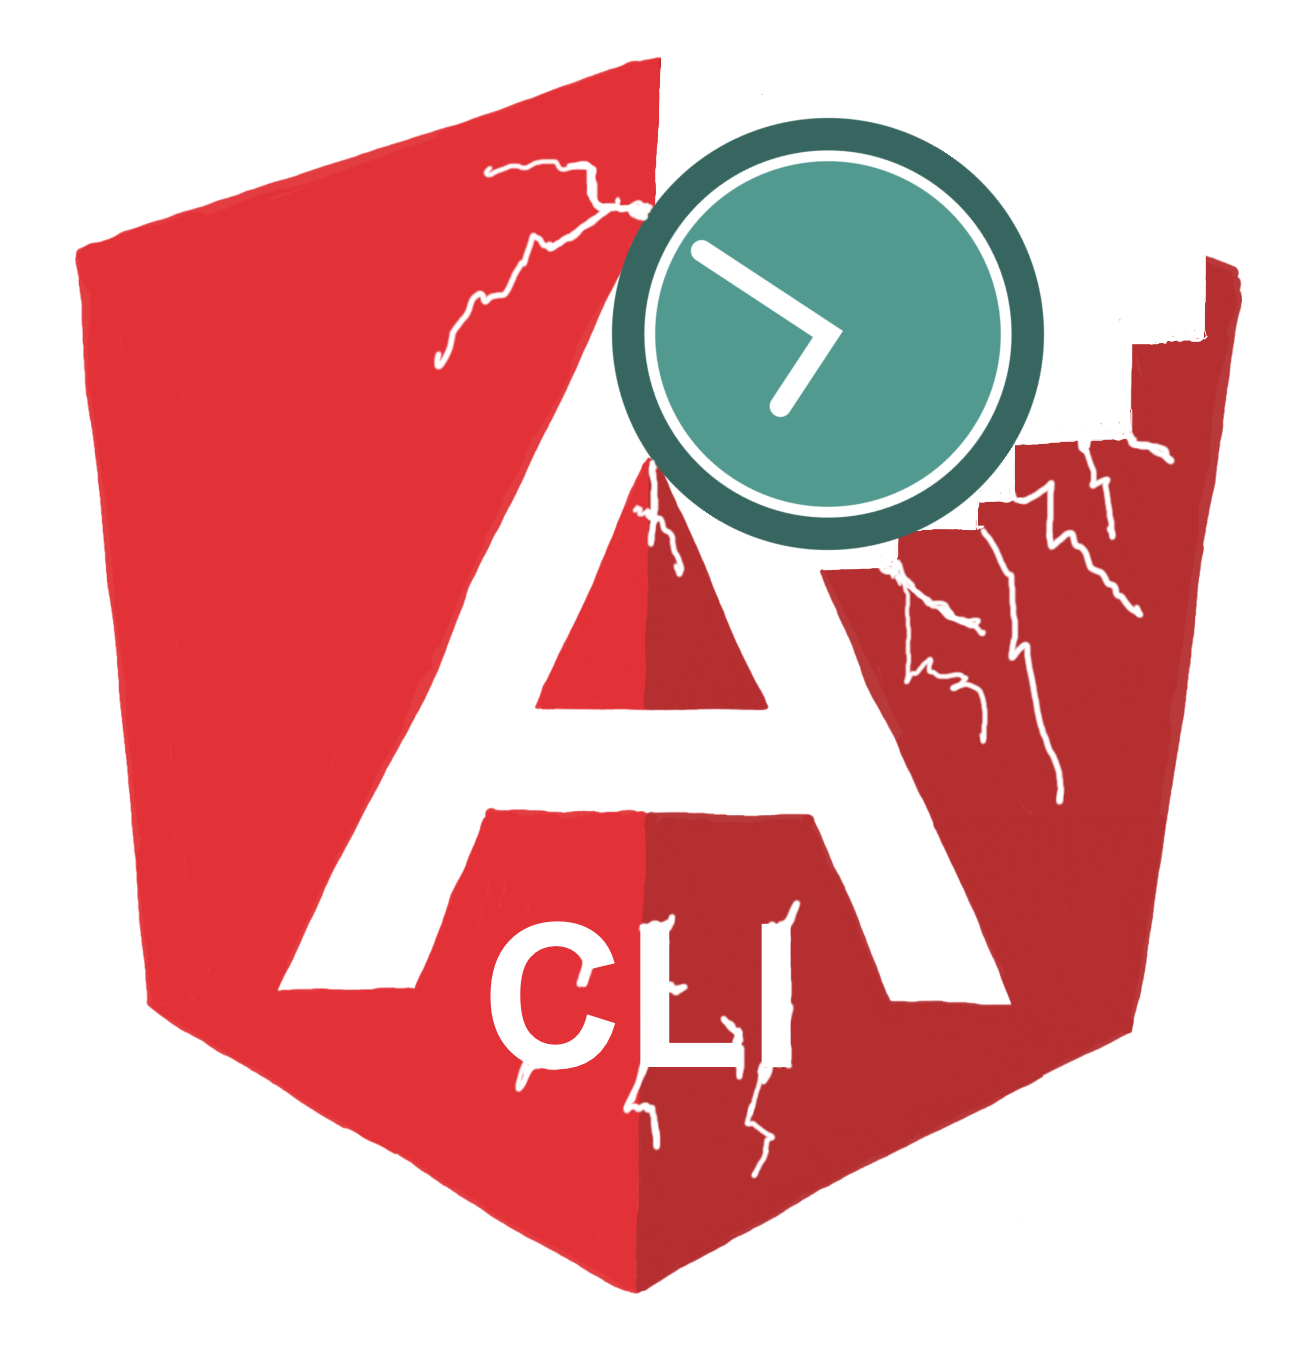 could not find module @angular-devkit/build-angular